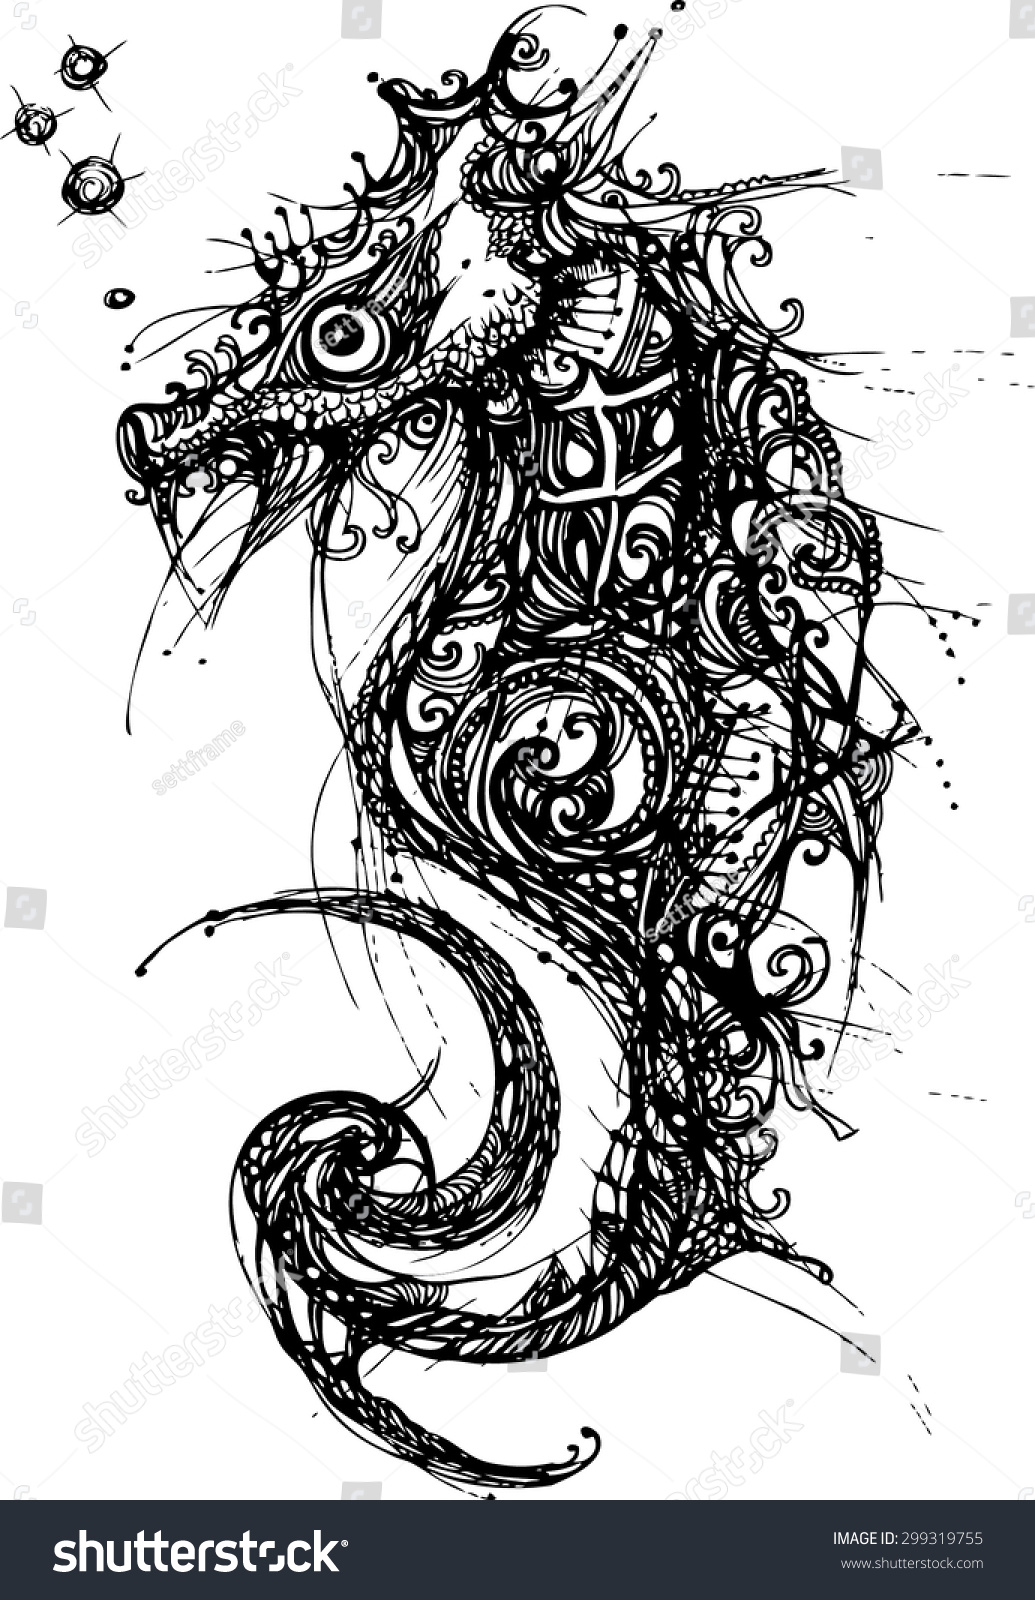 zentangle design of the sea horse hand draw for tattoo line art collection